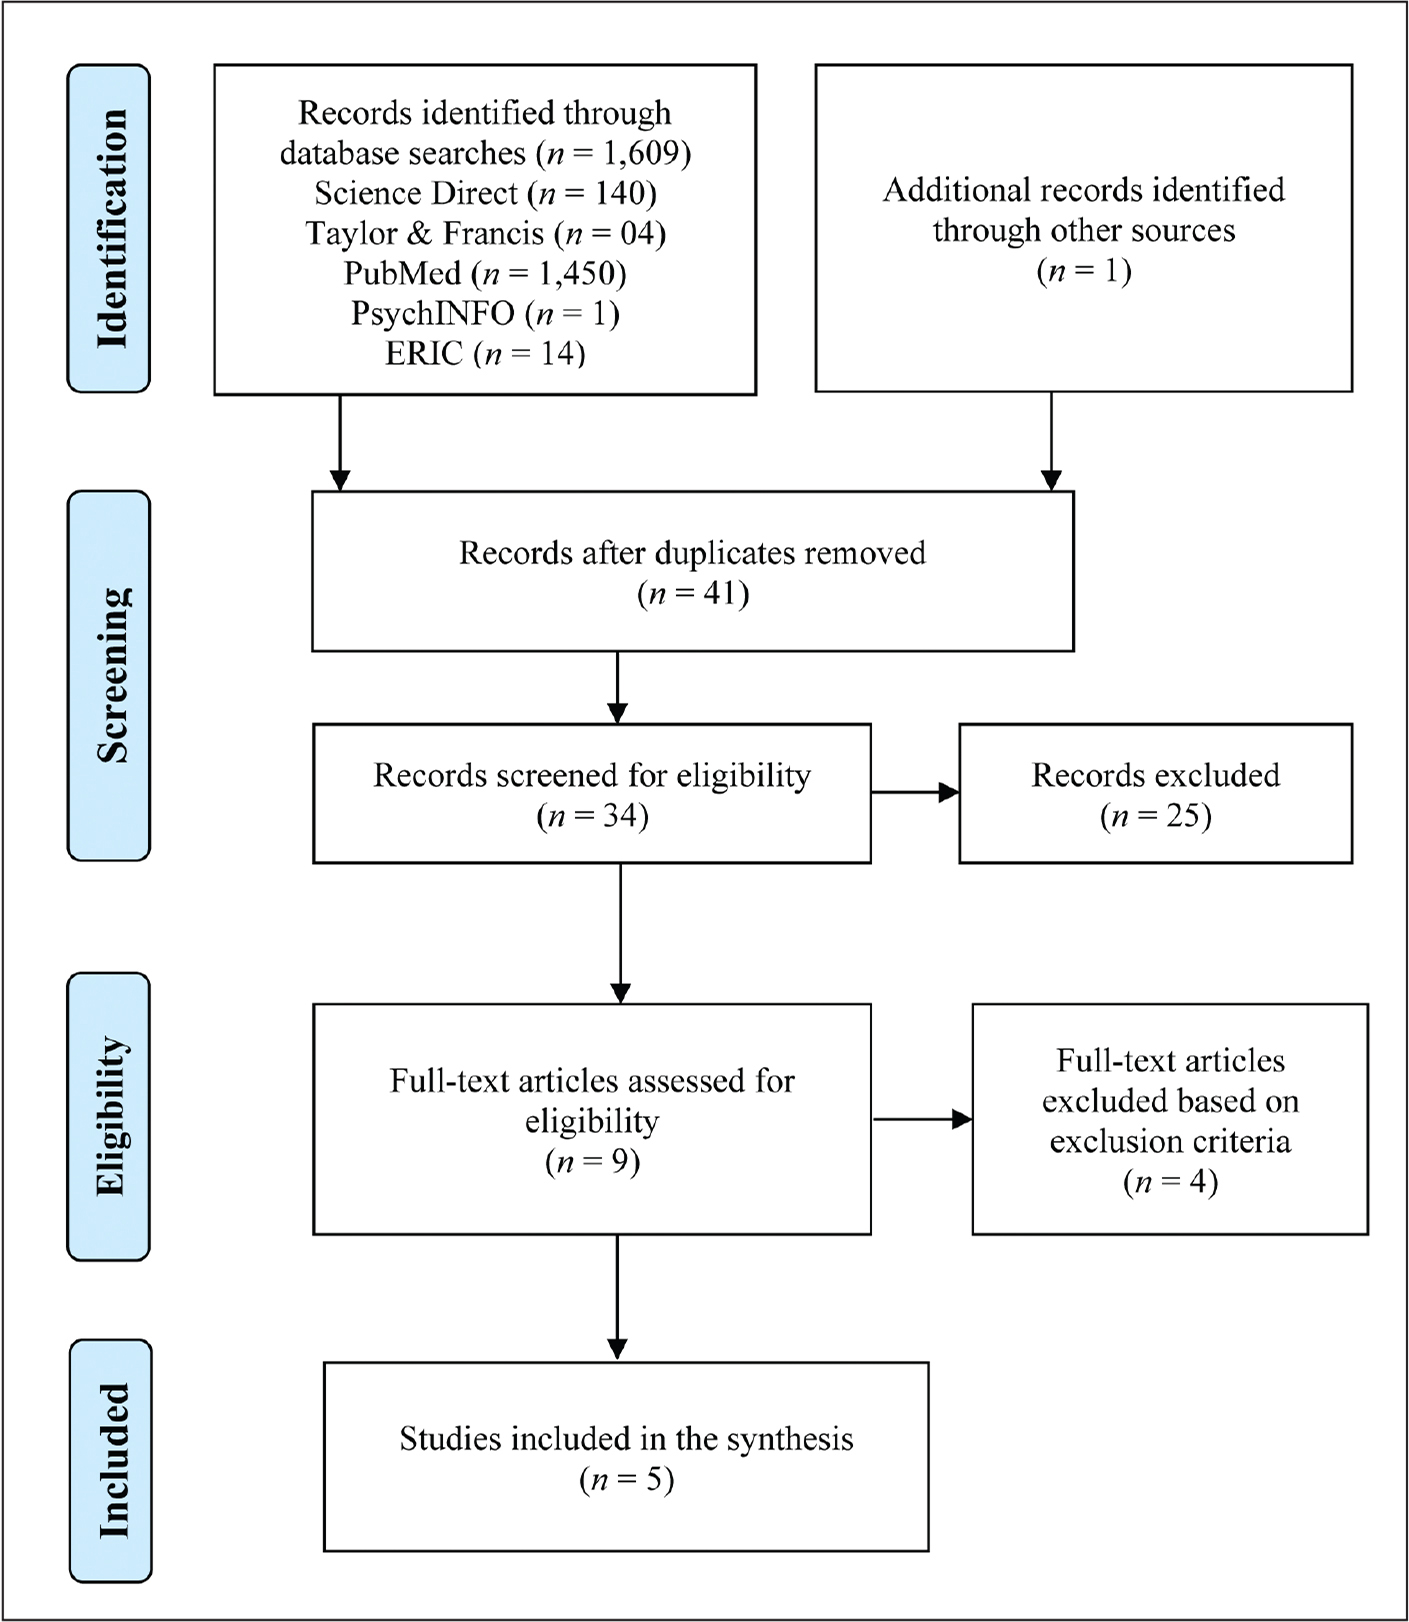 PRISMA (Preferred Reporting Items for Systematic Reviews and Meta-Analyses) flow diagram showing the procedure for literature search and selection of studies assessed the relation of exercise with self-injurious behavior.